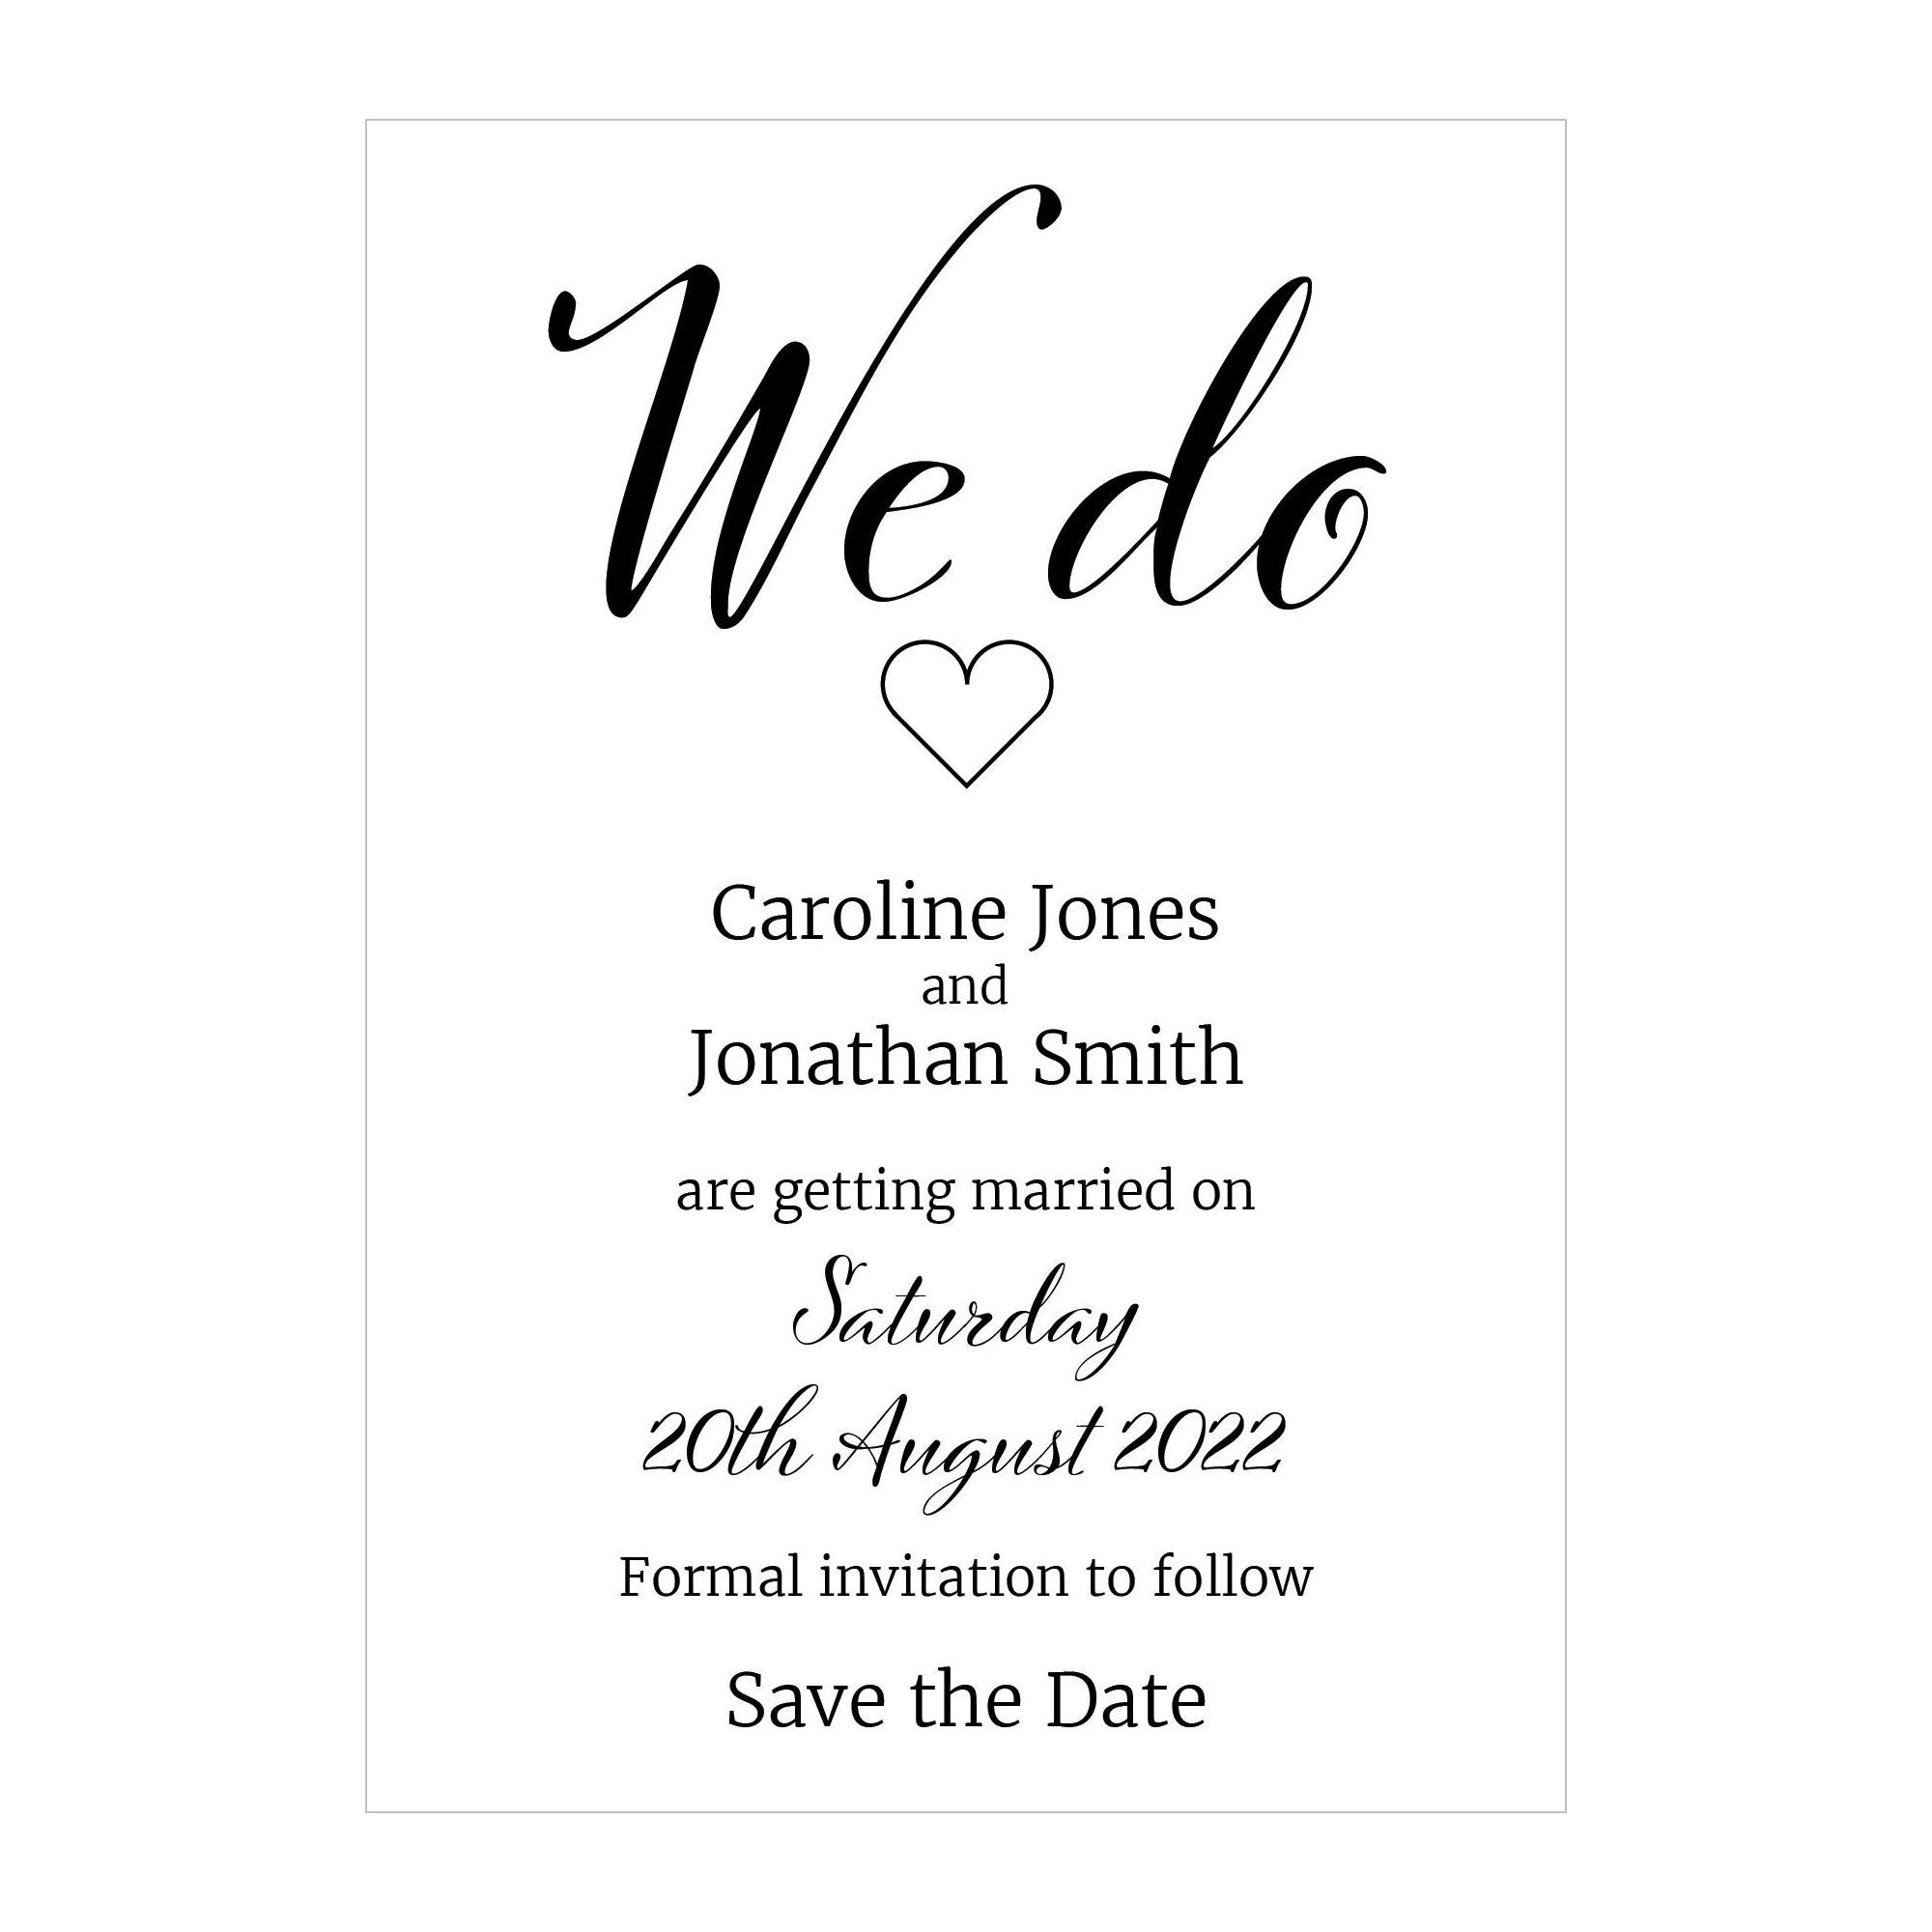 Textured White We Do Save the Date Cards